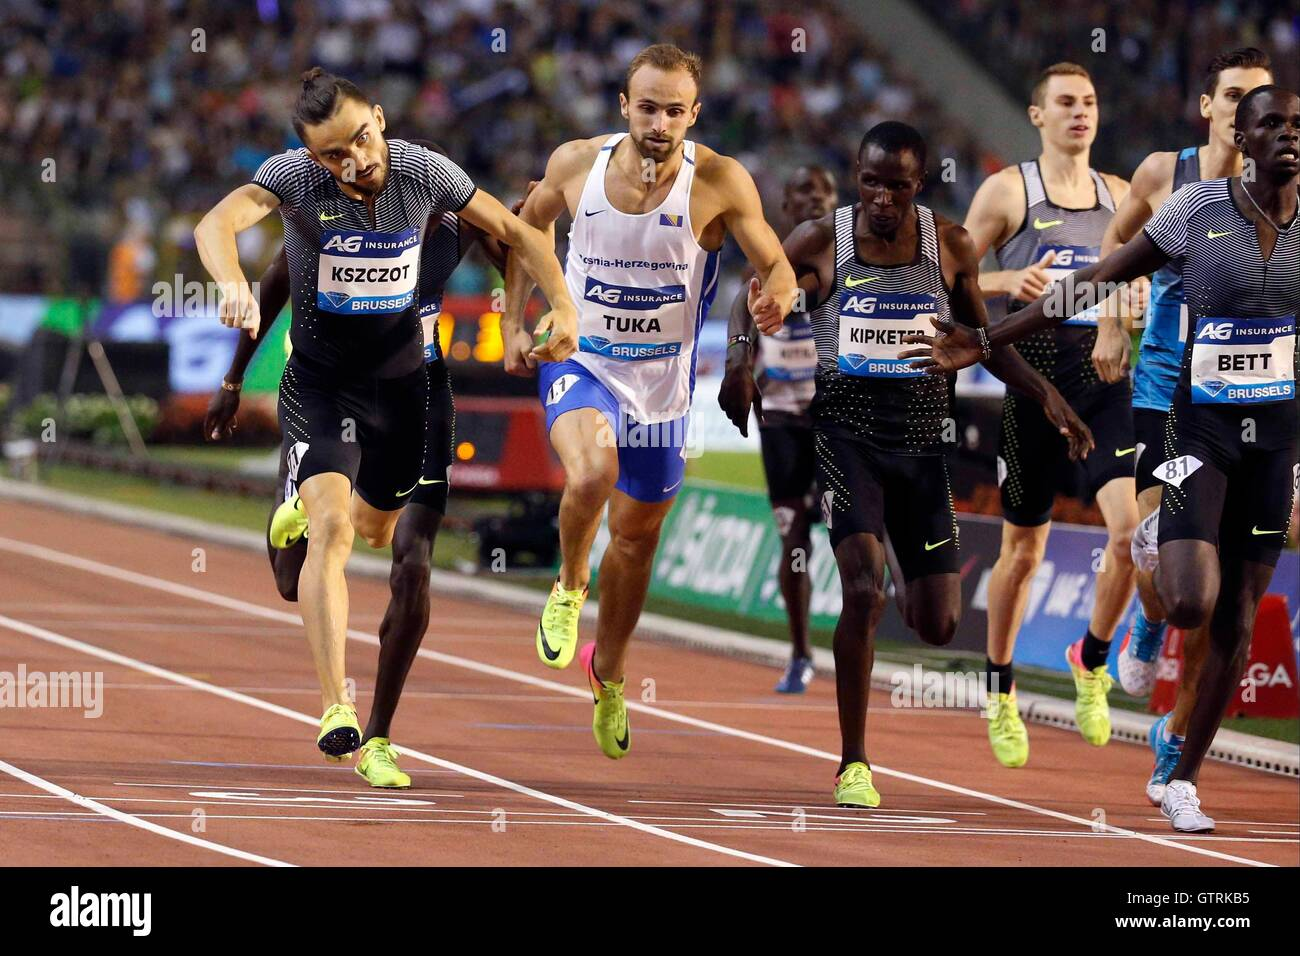 Brussels, Belgium. 09th Sep, 2016. IAAF Diamond League Memorial Van Damme meeting. Kszczot Adam © Action Plus - Stock Image